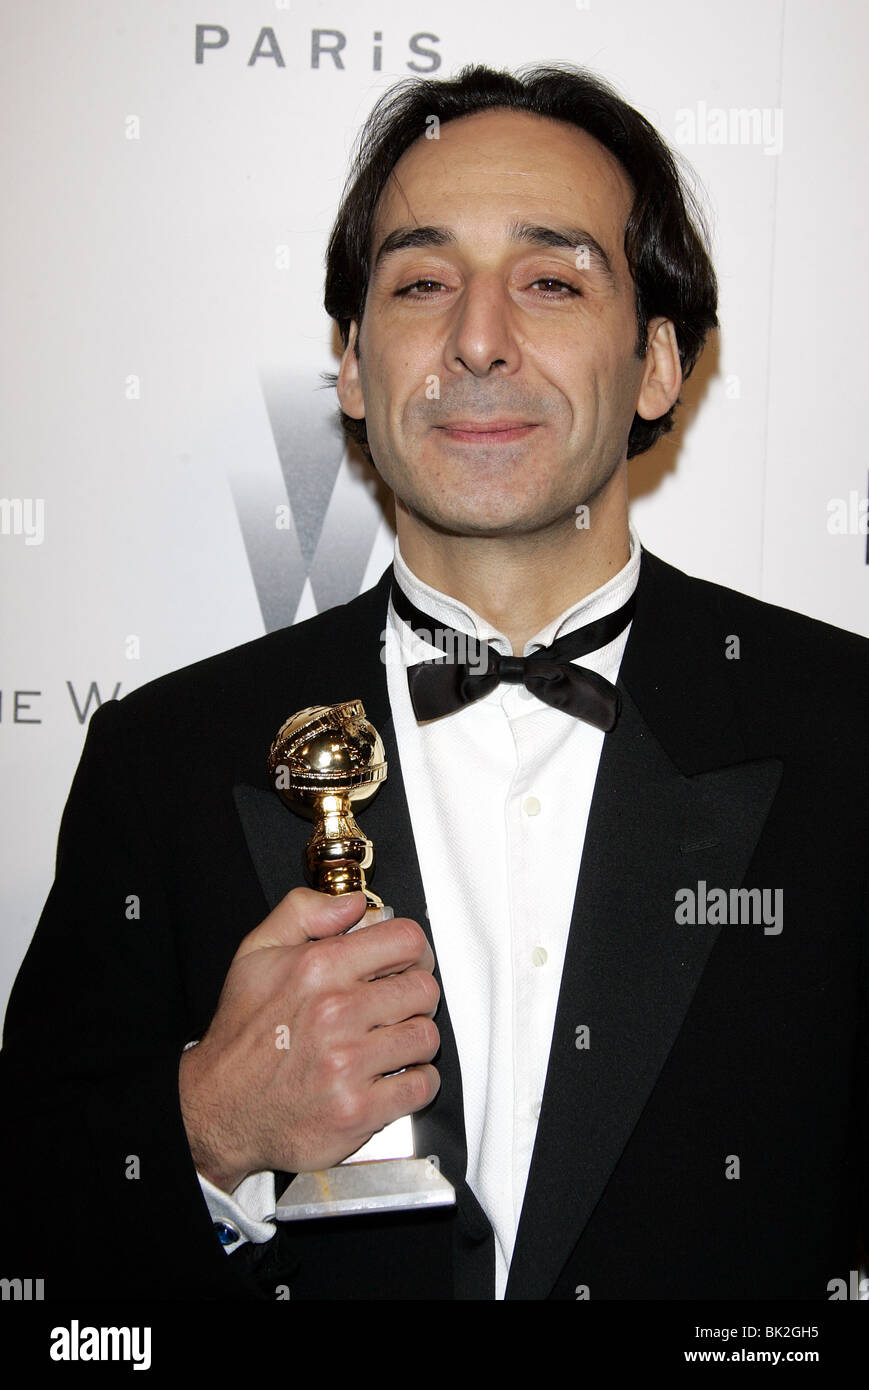 ALEXANDRE DESPLAT THE WEINSTEIN COMPANYS 2007 GOLDEN GLOBES AFTER PARTY BEVERLY HILLS HOTEL BEVERLY HILLS LOS ANGELES - Stock Image